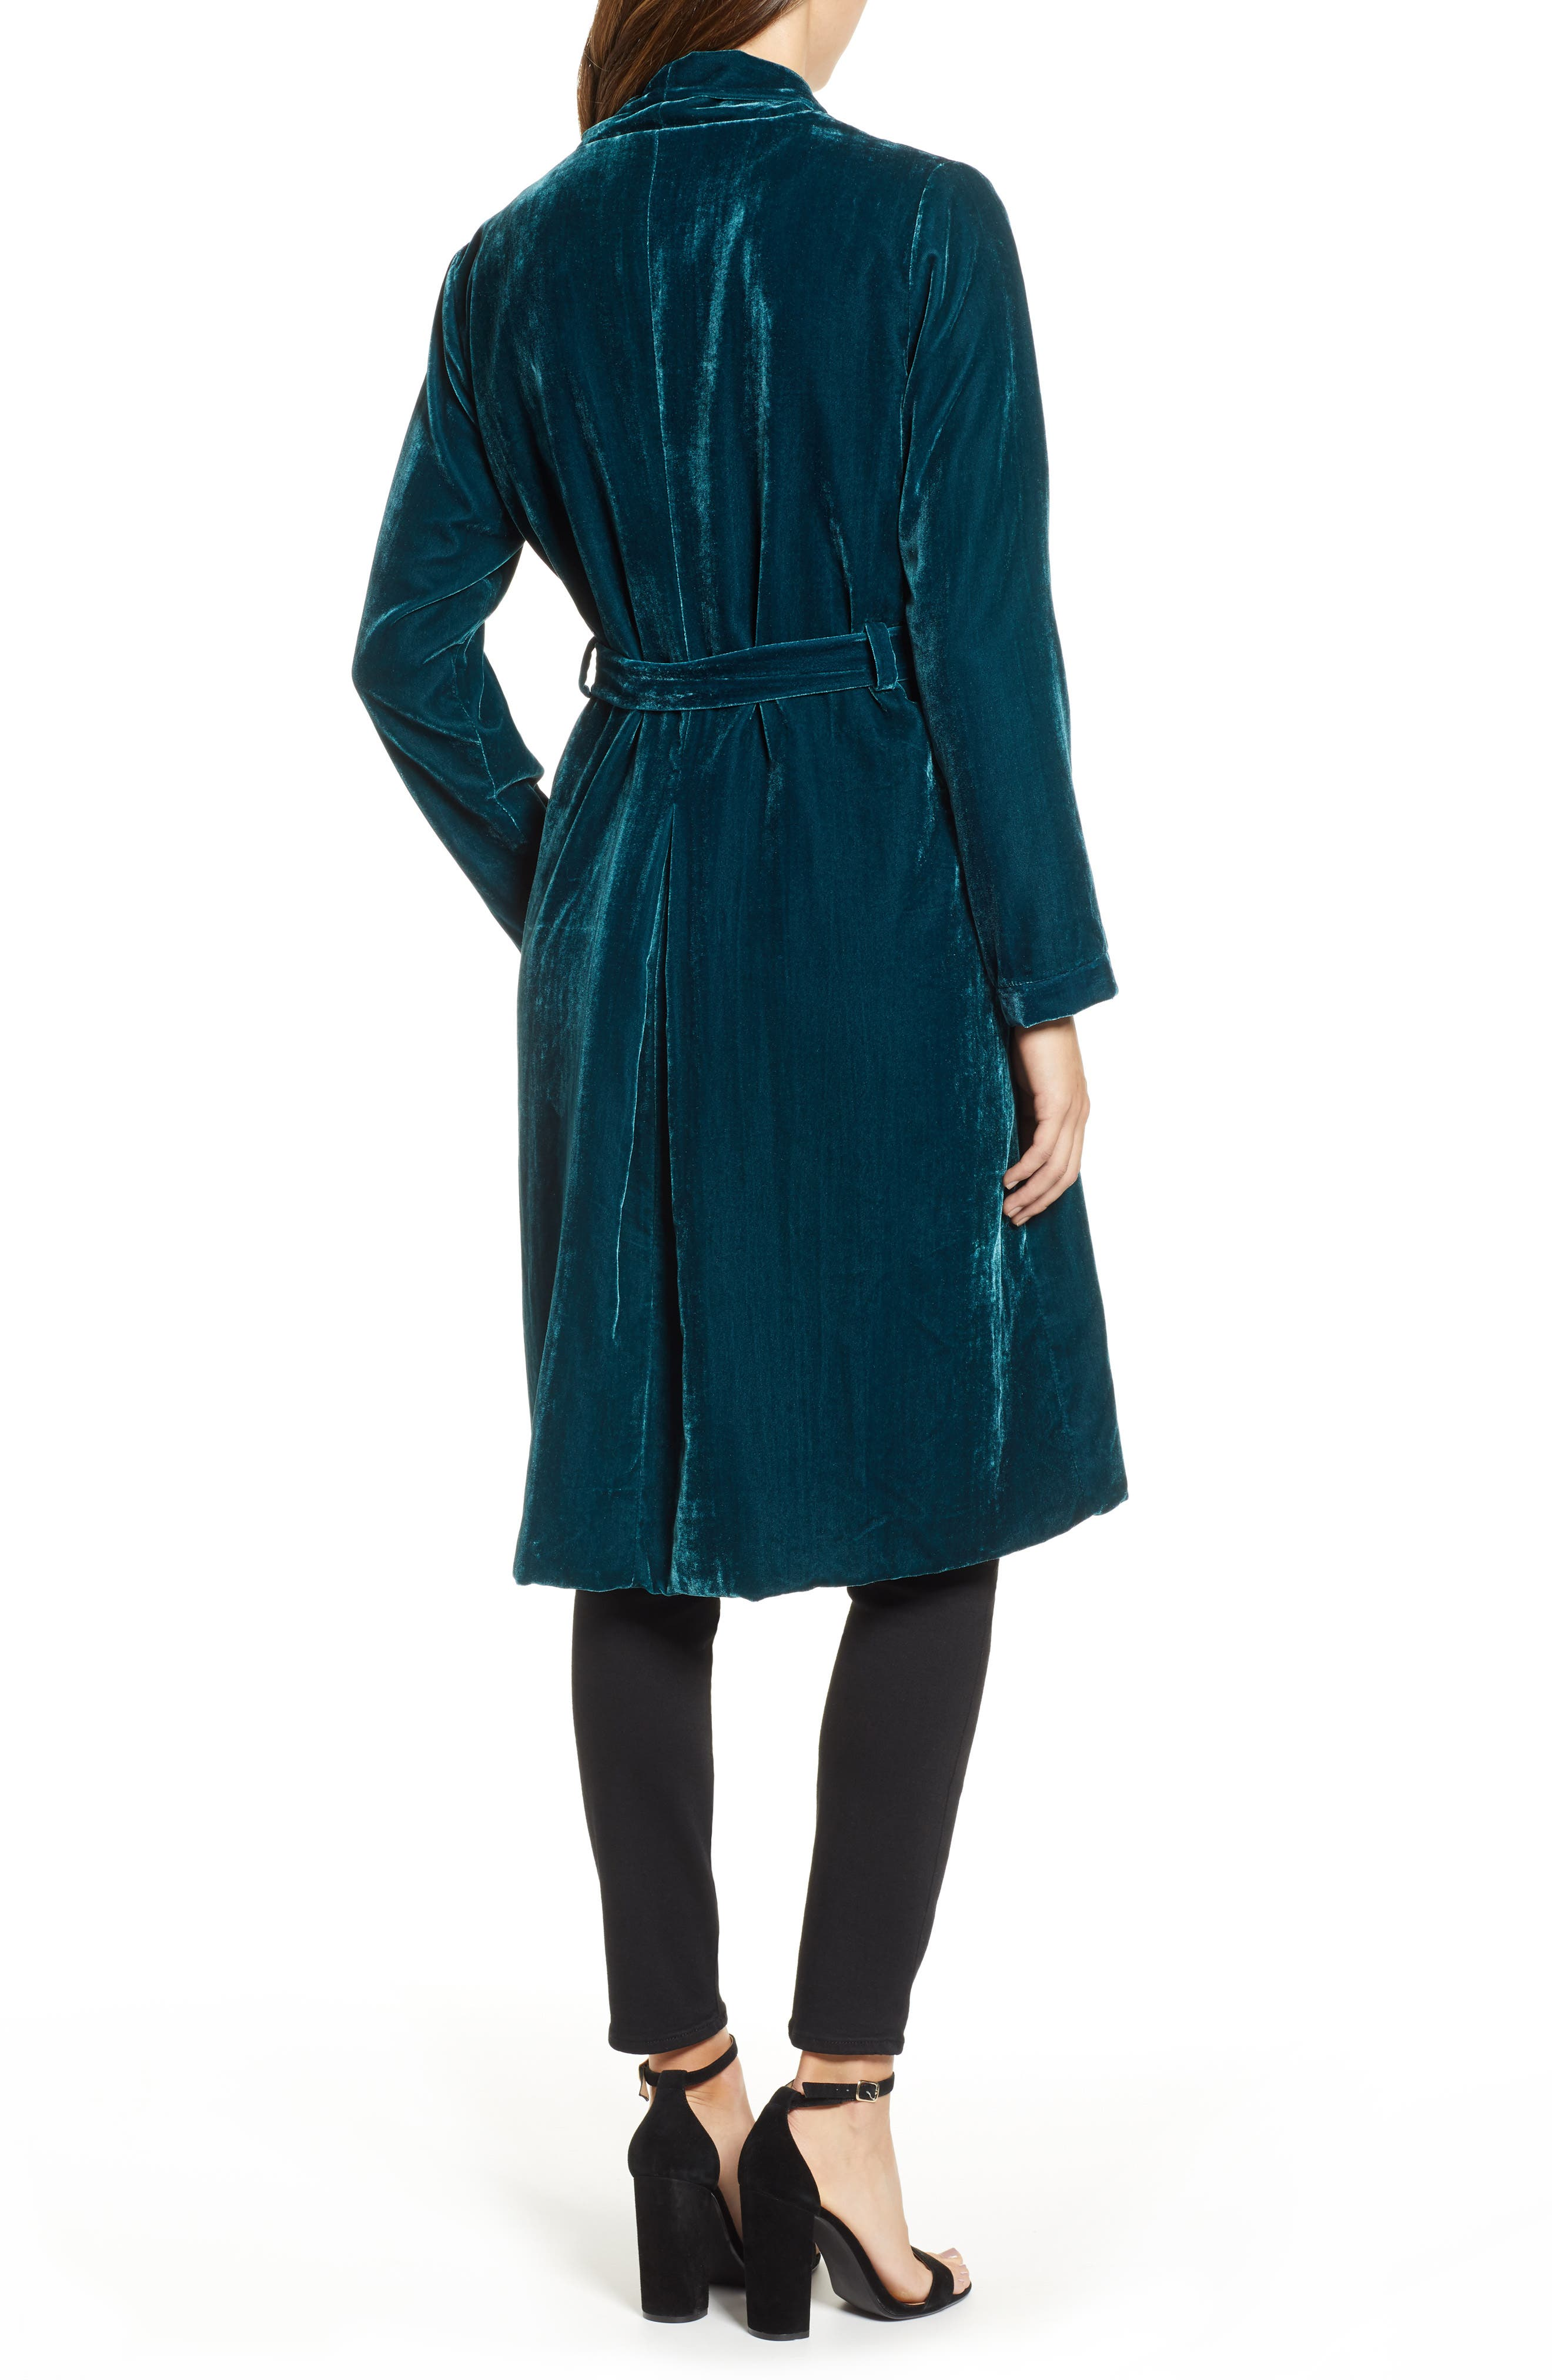 CUPCAKES AND CASHMERE,                             Belted Velvet Duster,                             Alternate thumbnail 2, color,                             FOREST GREEN